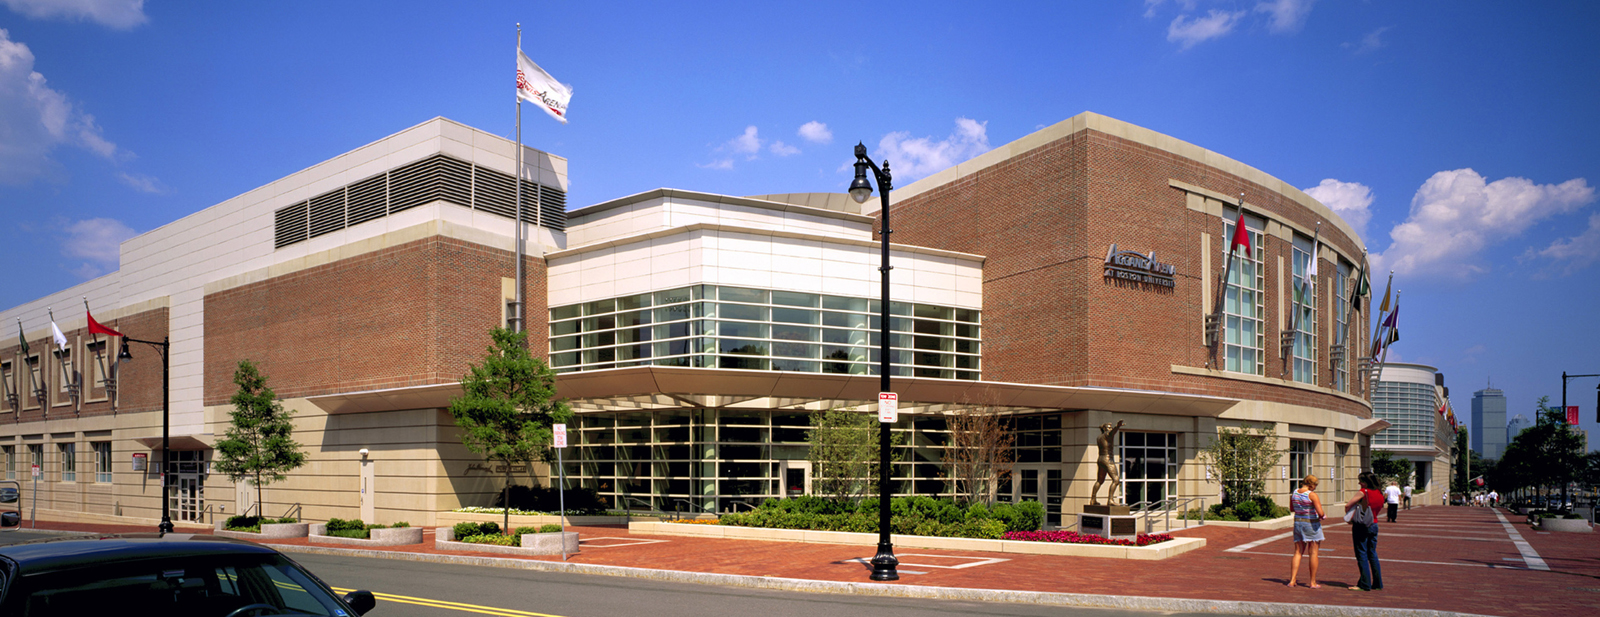 Boston University, Fitness and Recreation Center, and Agganis Arena, Boston, MA